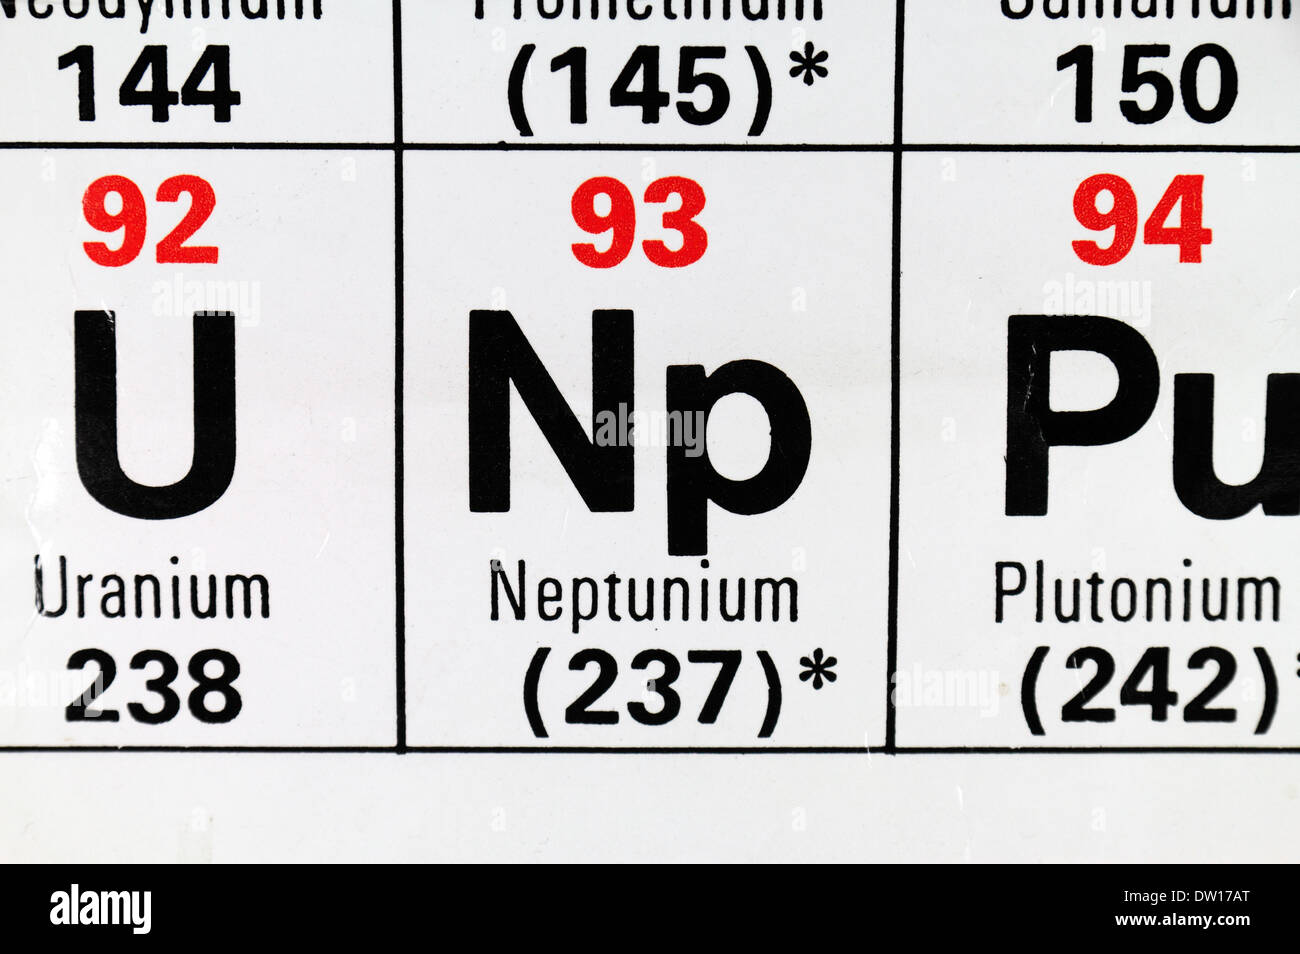 Neptunium np as it appears on the periodic table stock photo neptunium np as it appears on the periodic table gamestrikefo Choice Image